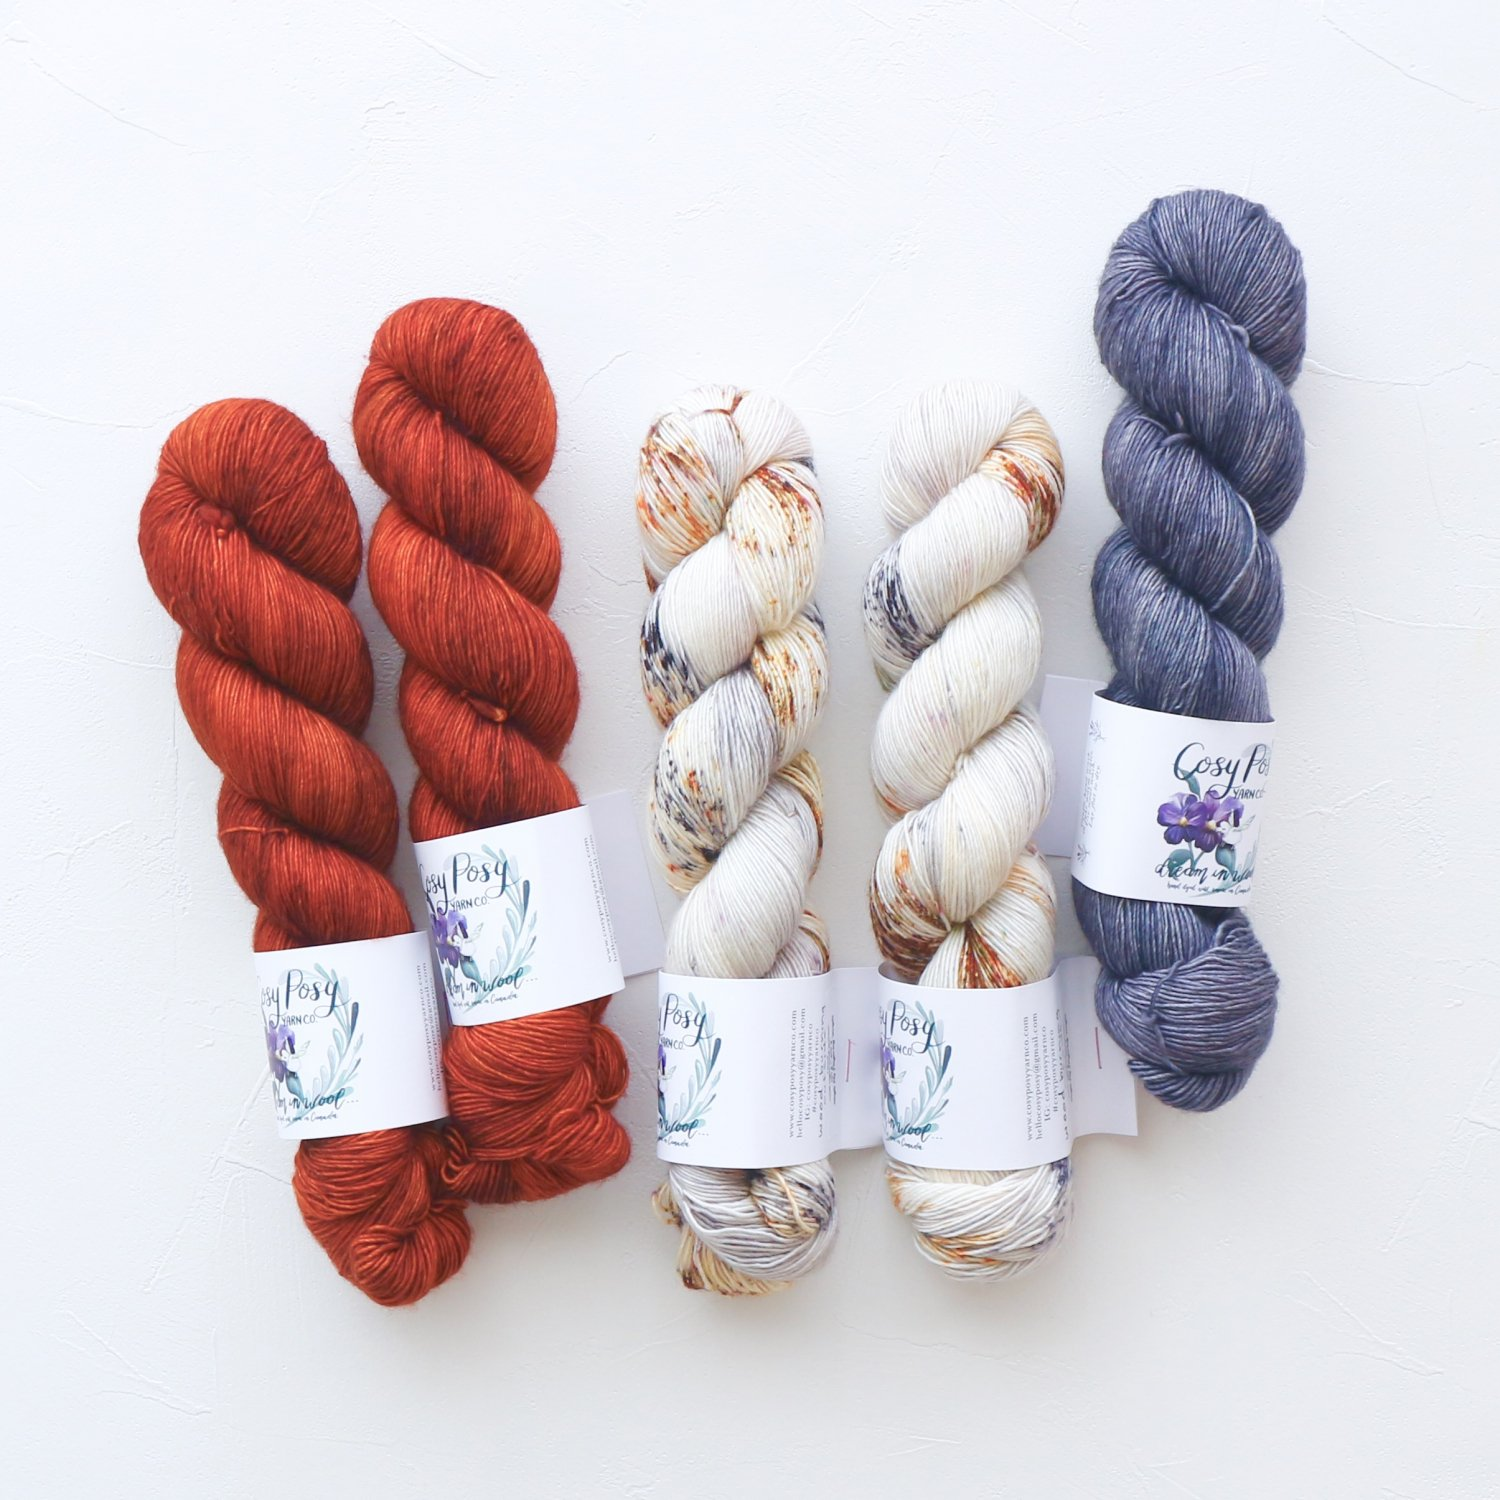 【「Ember Sweater」色合わせセット】<br>Cosy Posy Yarn CLOUD<br>Ember Aセット(長袖 S/Mサイズ)